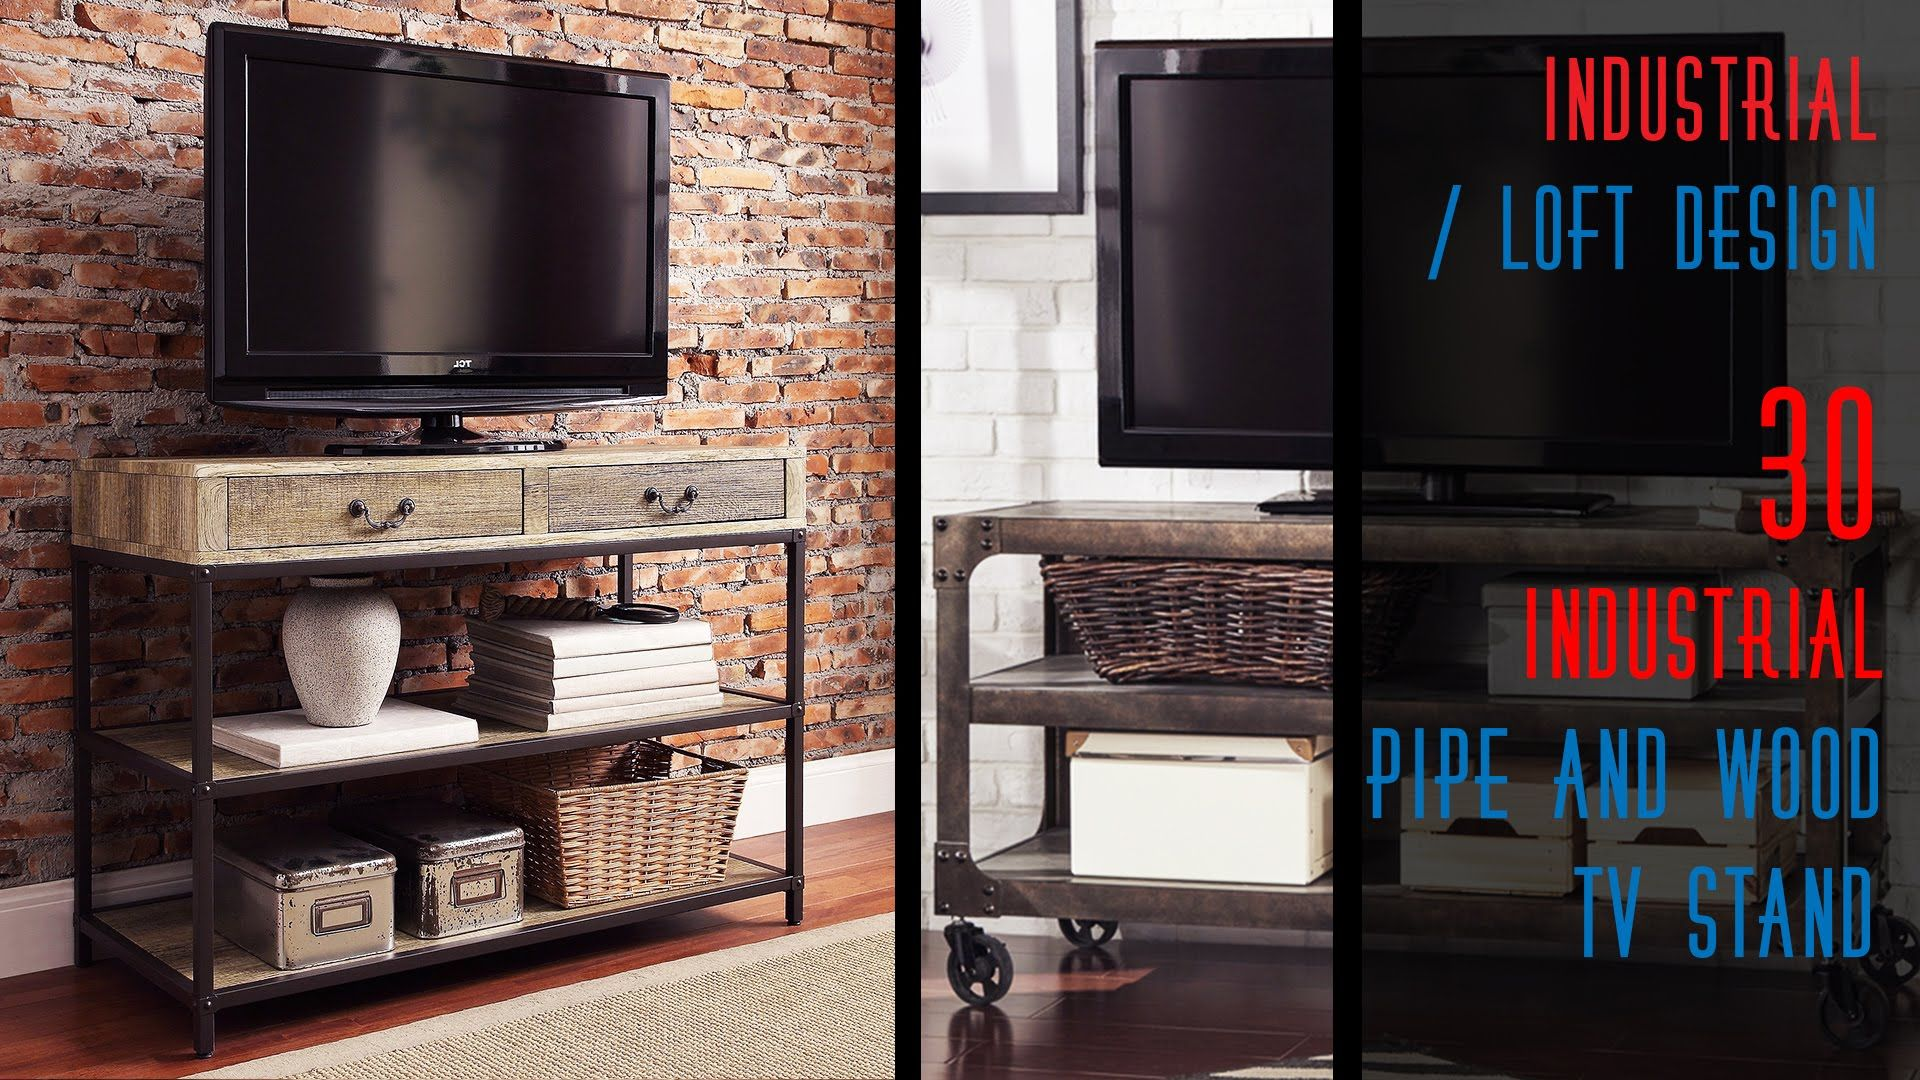 30 DIY Industrial Metal and Wood TV Stand The size of the